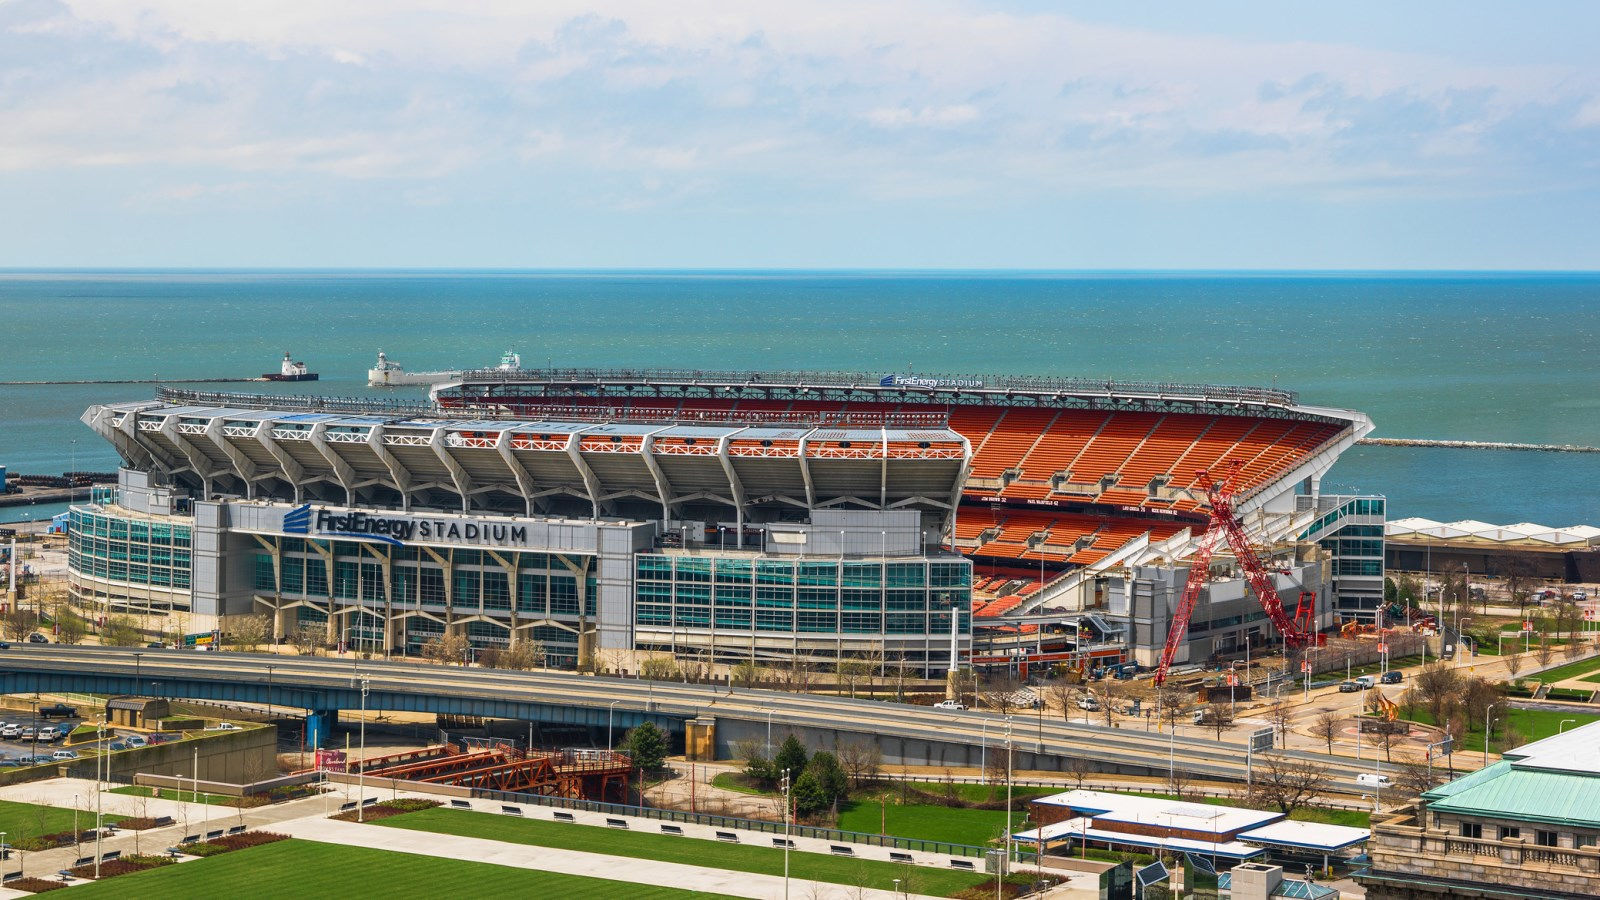 Things to do in Cleveland - FirstEnergy Stadium